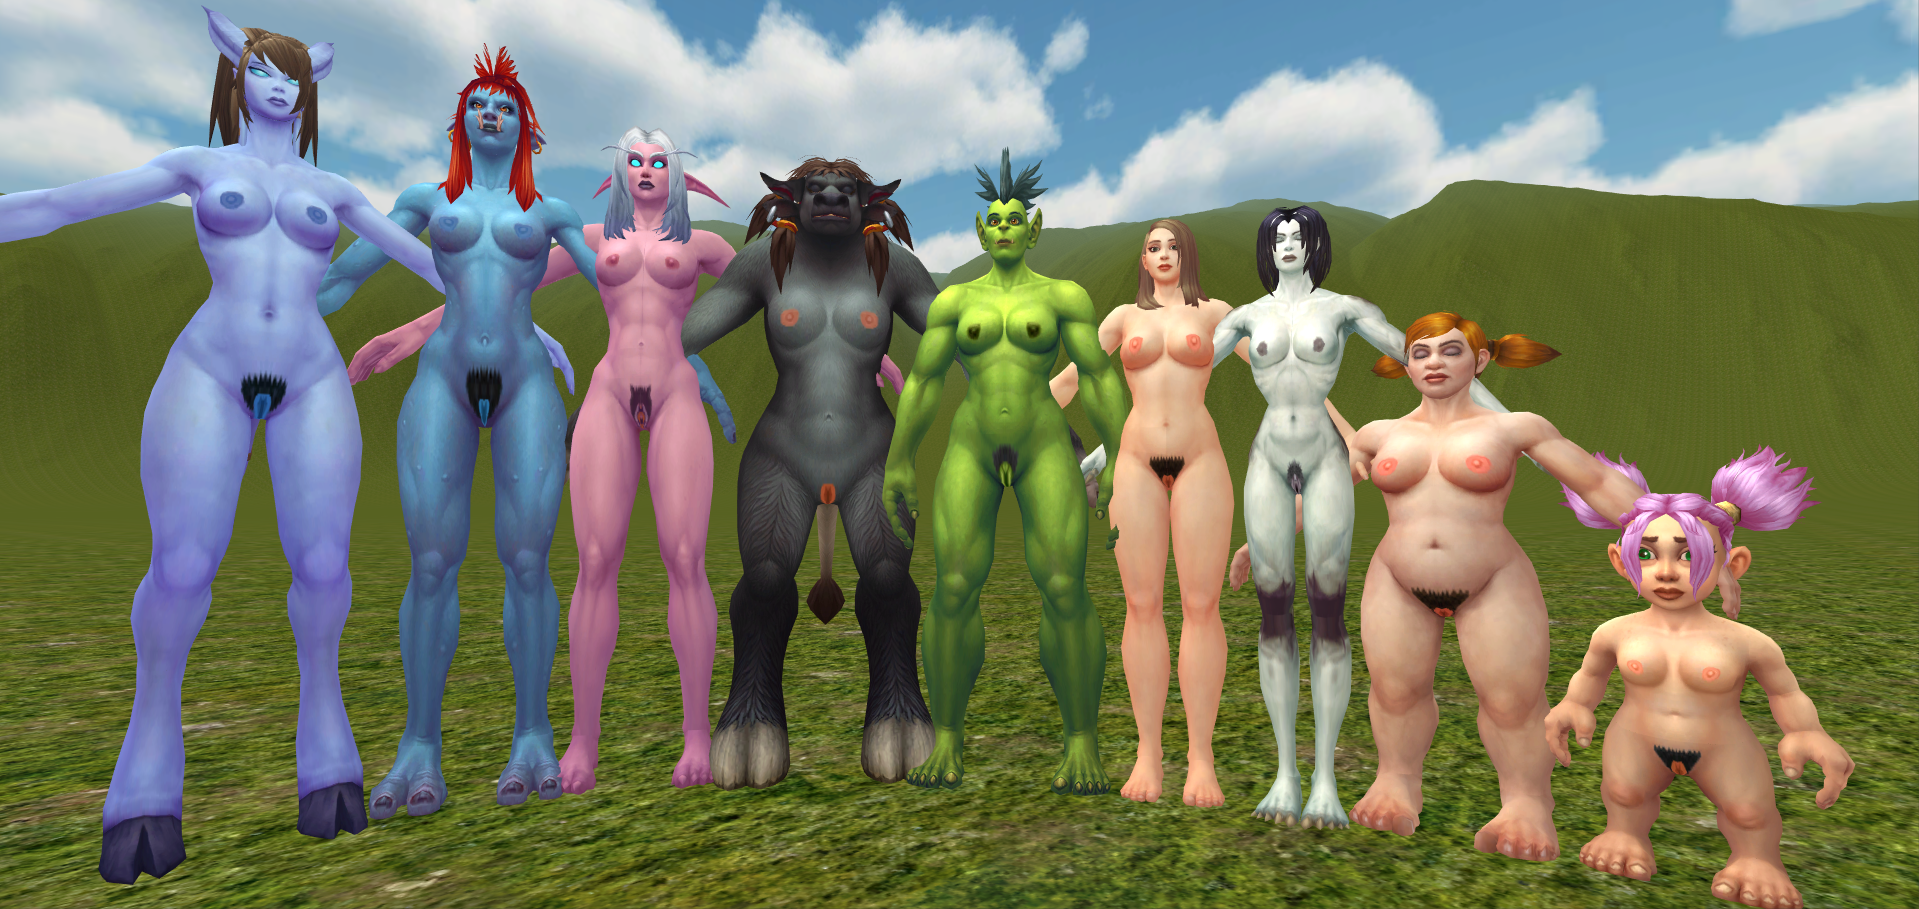 World of warcraft naked skins sexy movies